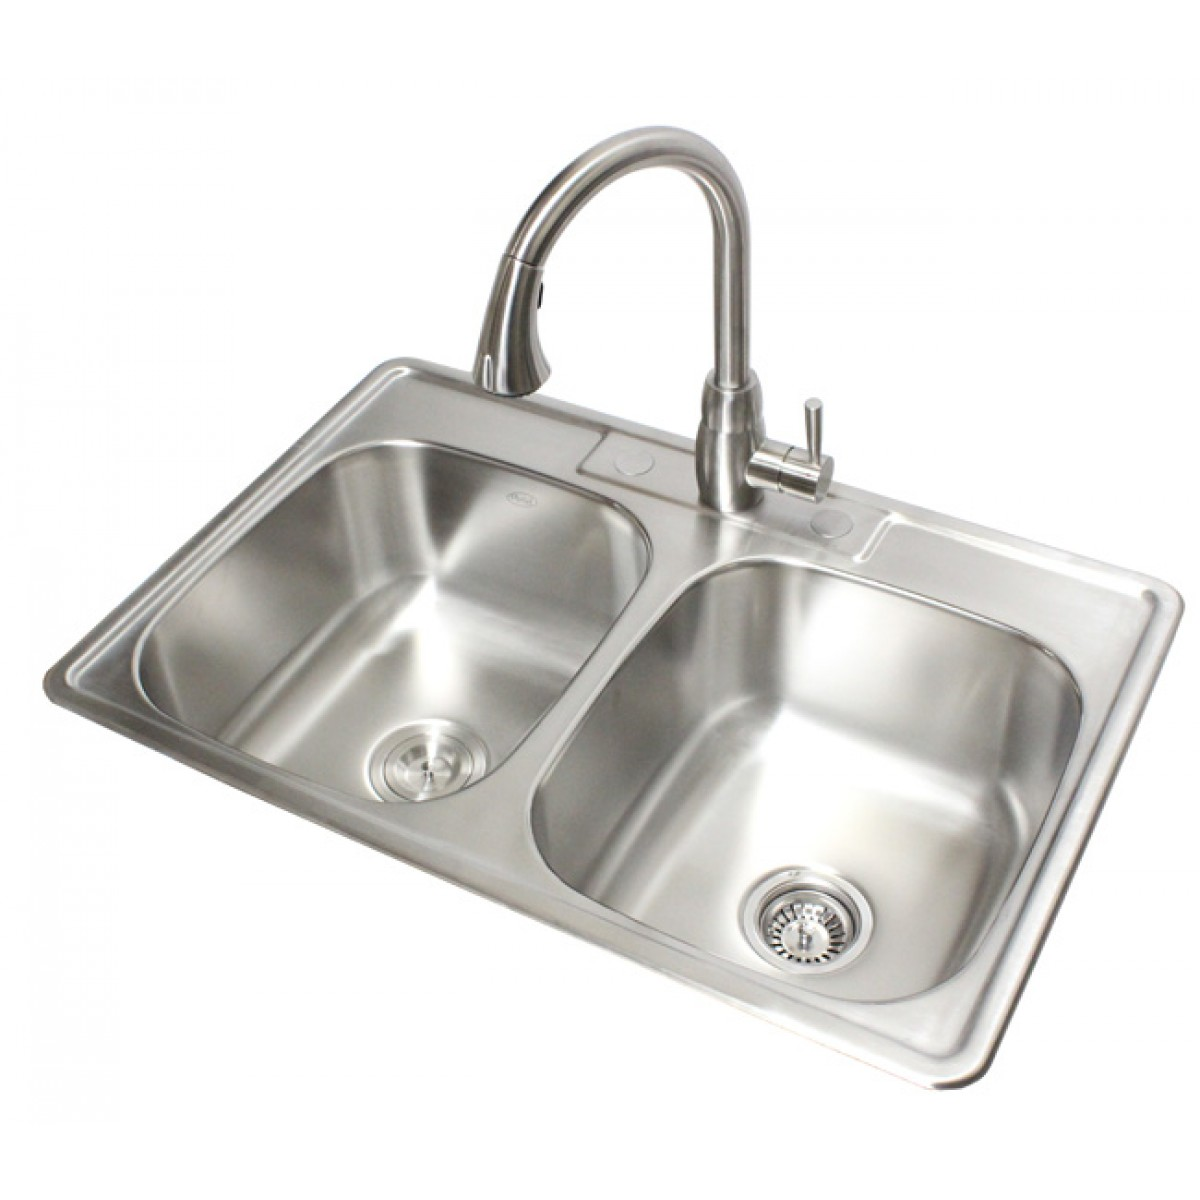 33 Inch Stainless Steel Top Mount Drop In 50 50 Double Bowl Kitchen Sink 18 Gauge